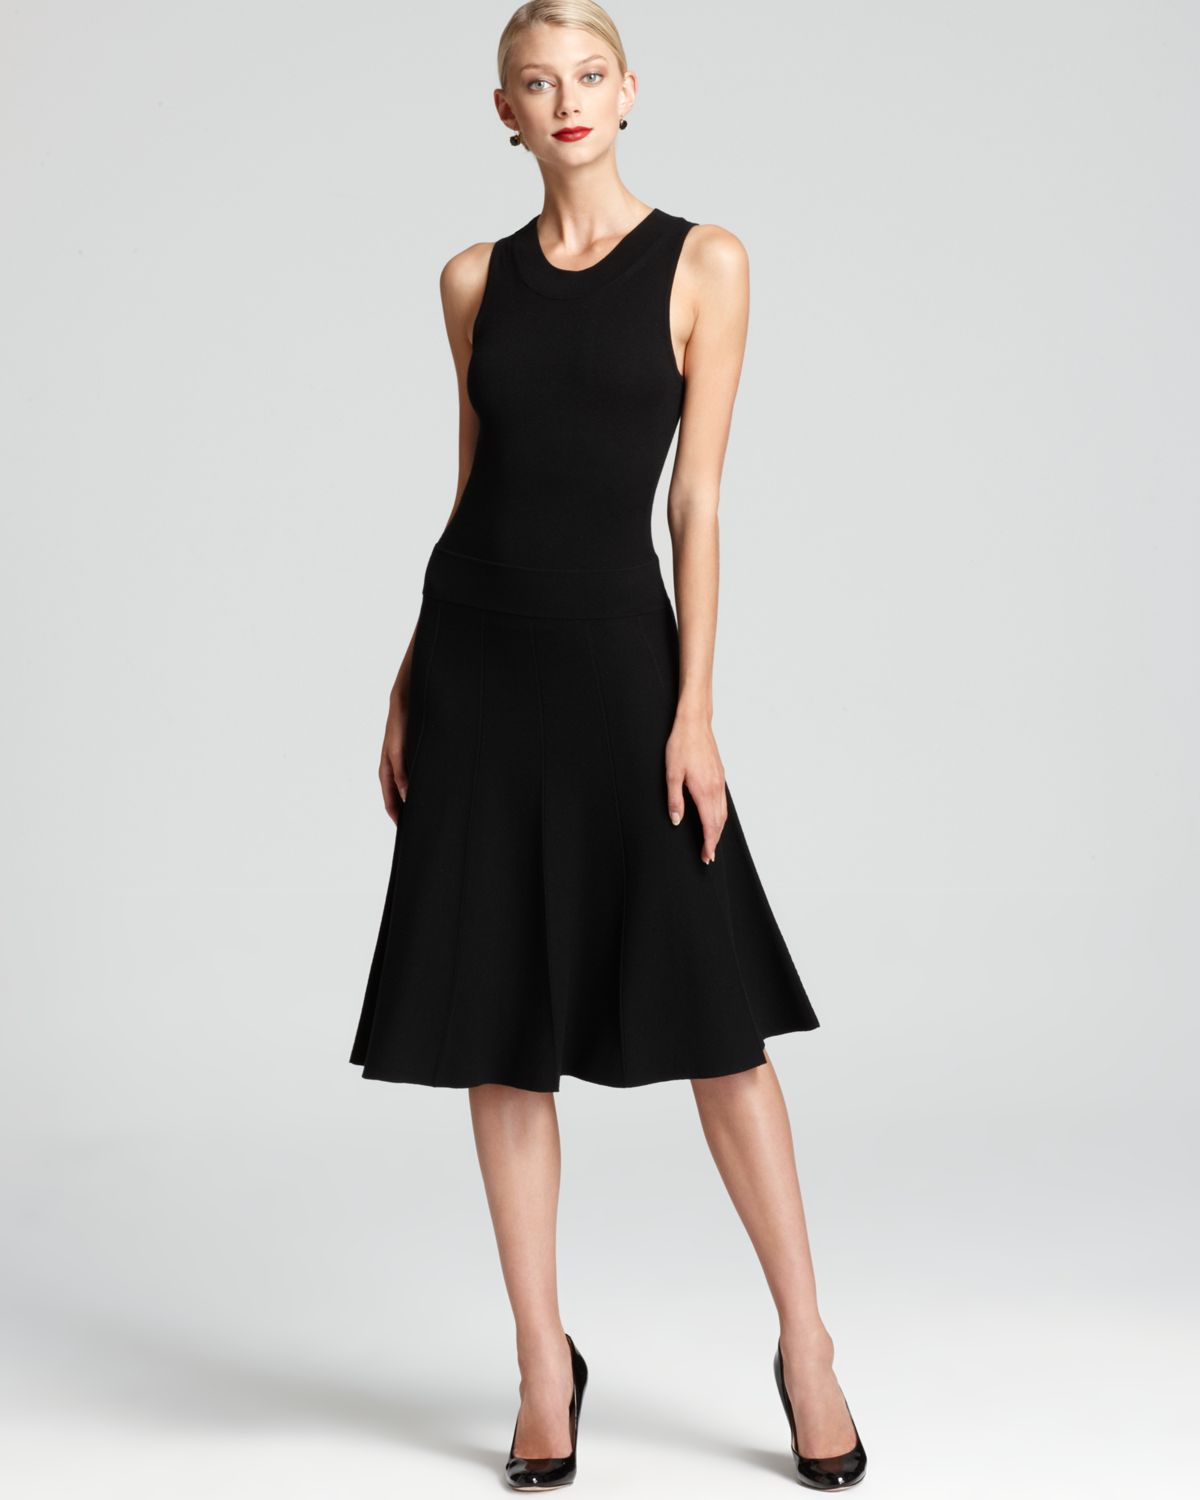 Donna karan new york sleeveless dress panelled flirty in for Donna karen new york